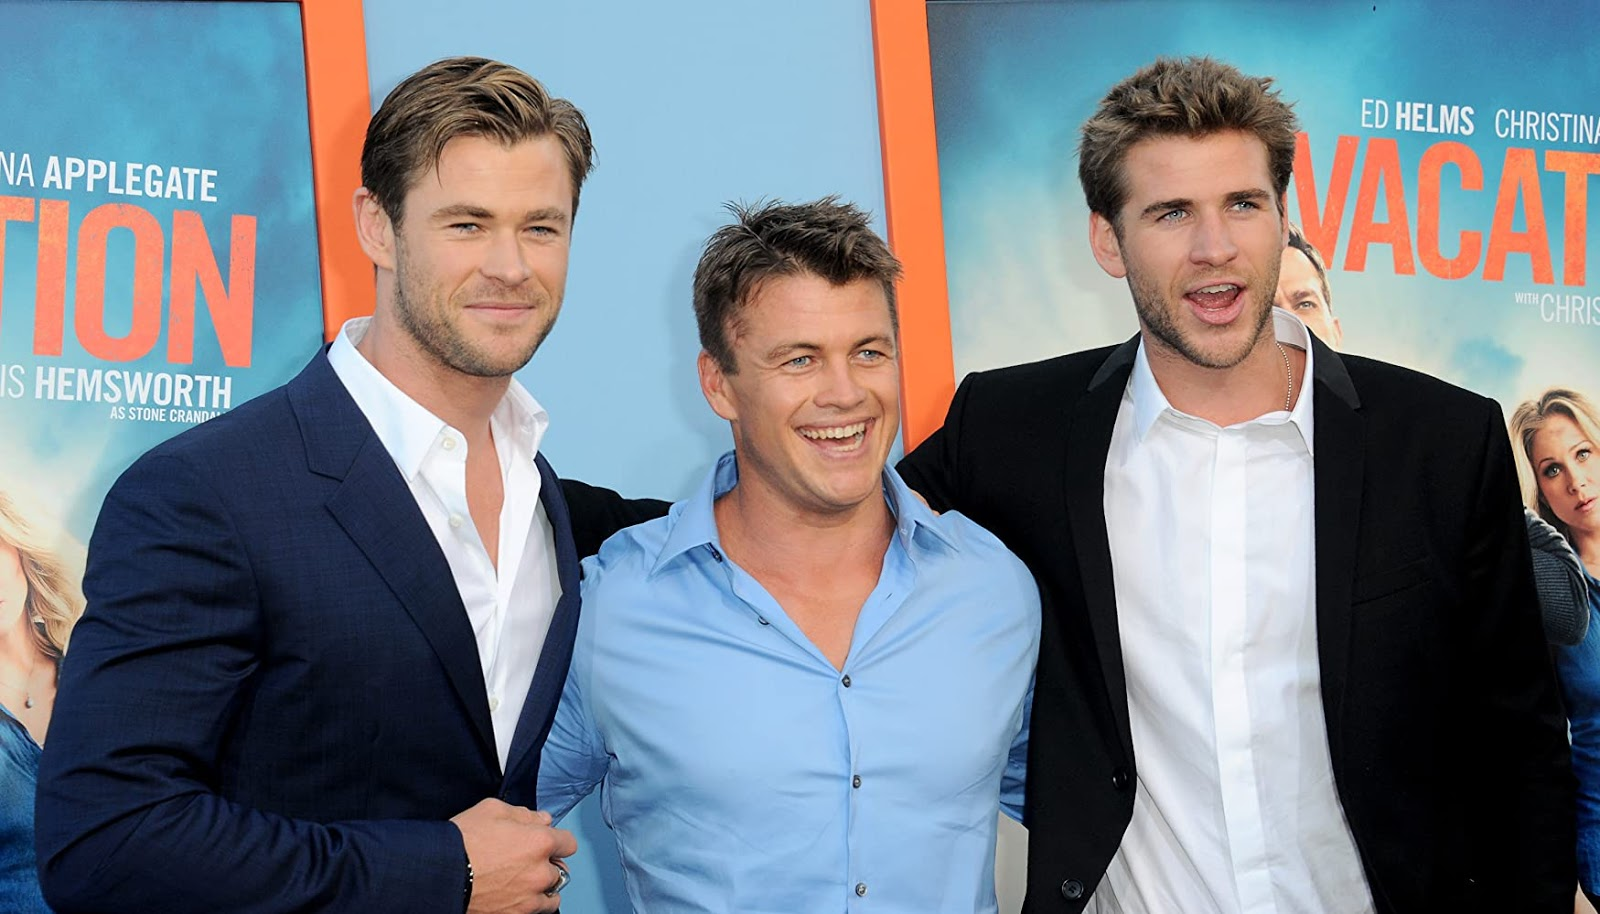 Chris Hemsworth, Luke Hemsworth, and Liam Hemsworth